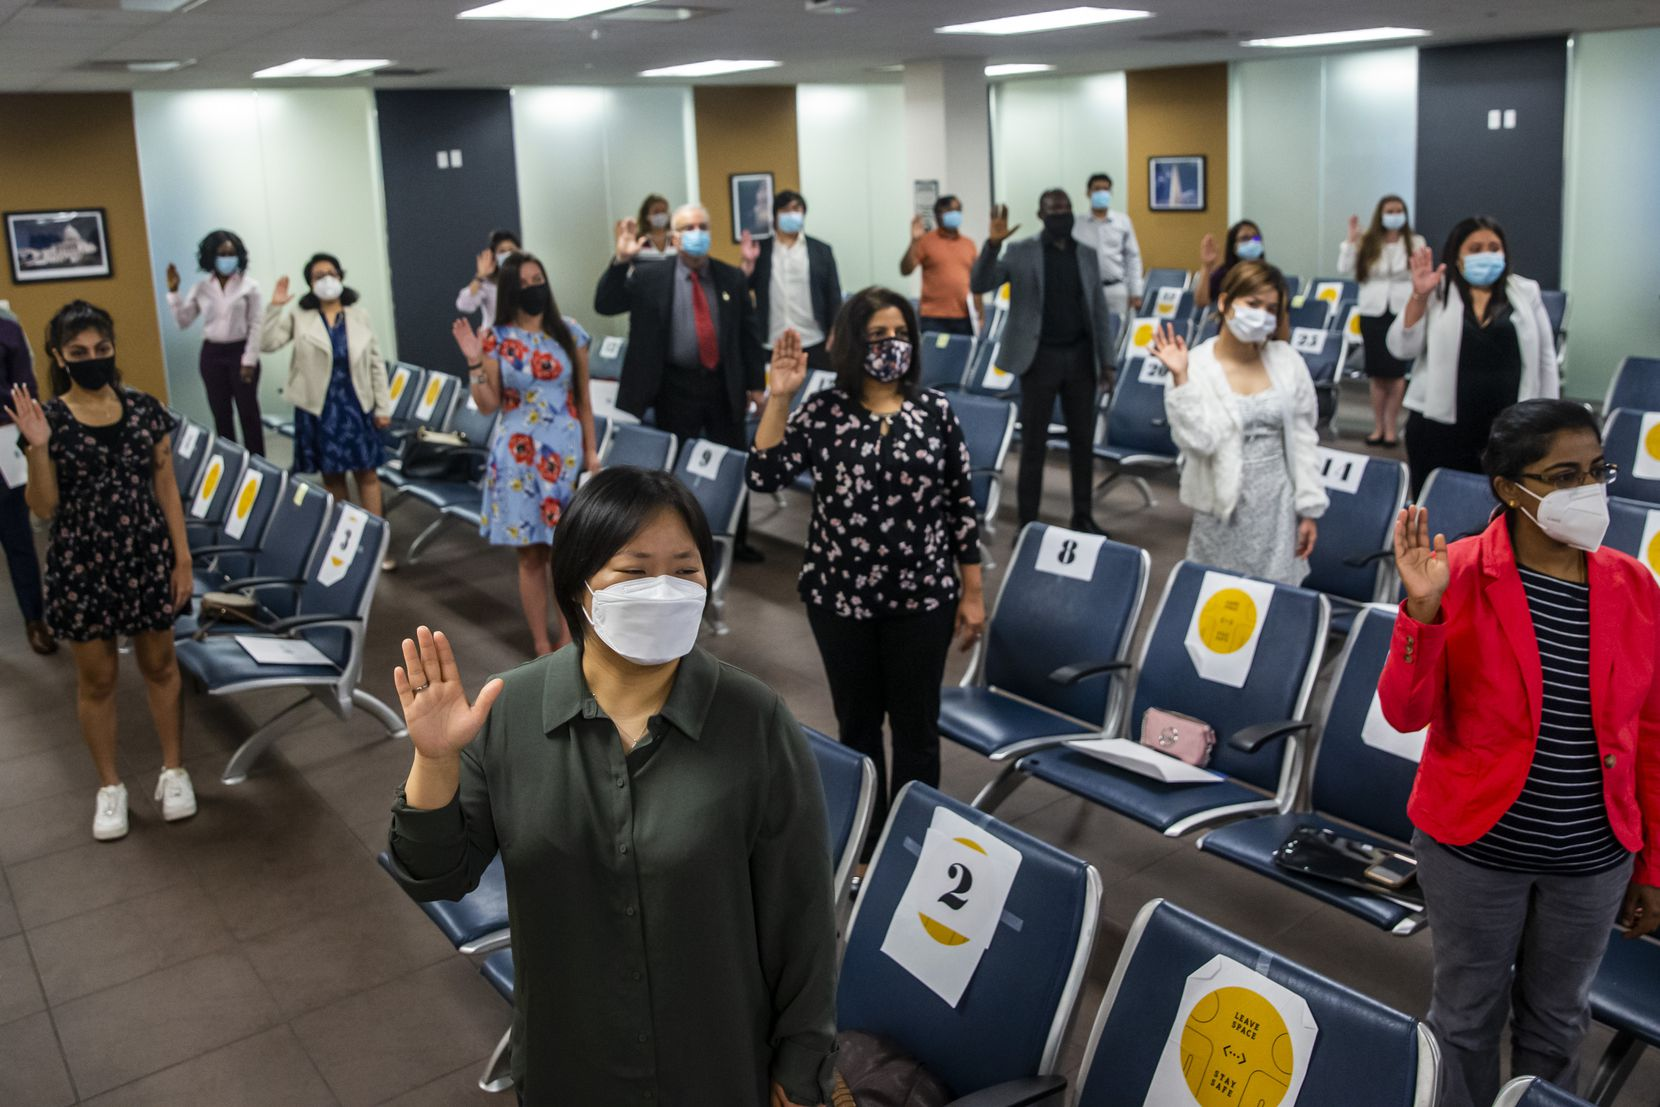 Rebecca Taehee Lee (front) joined others in taking an oath of citizenship during a socially-distanced naturalization ceremony virtually presided over by Chief Judge Barbara Lynn at the United States Citizenship and Immigration Services Field Office in Irving on Friday, Sep. 18, 2020.